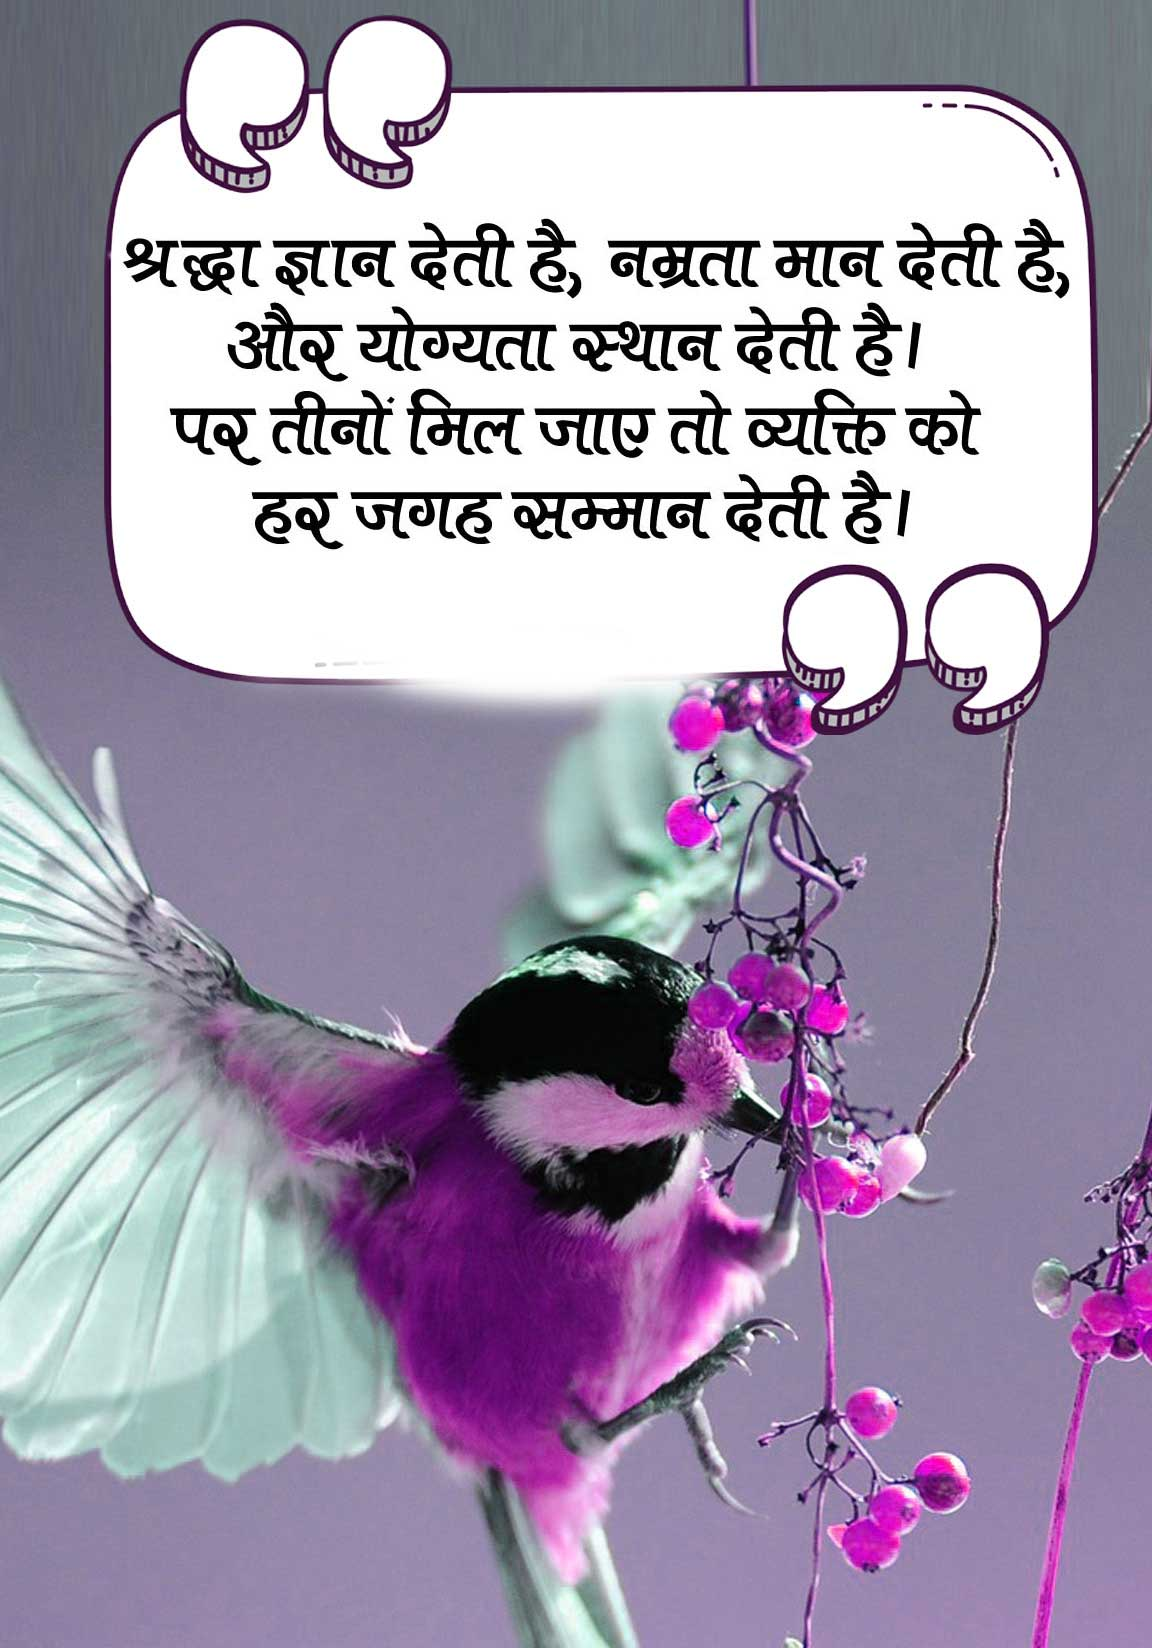 Hindi Life Quotes DP Profile Images (87)